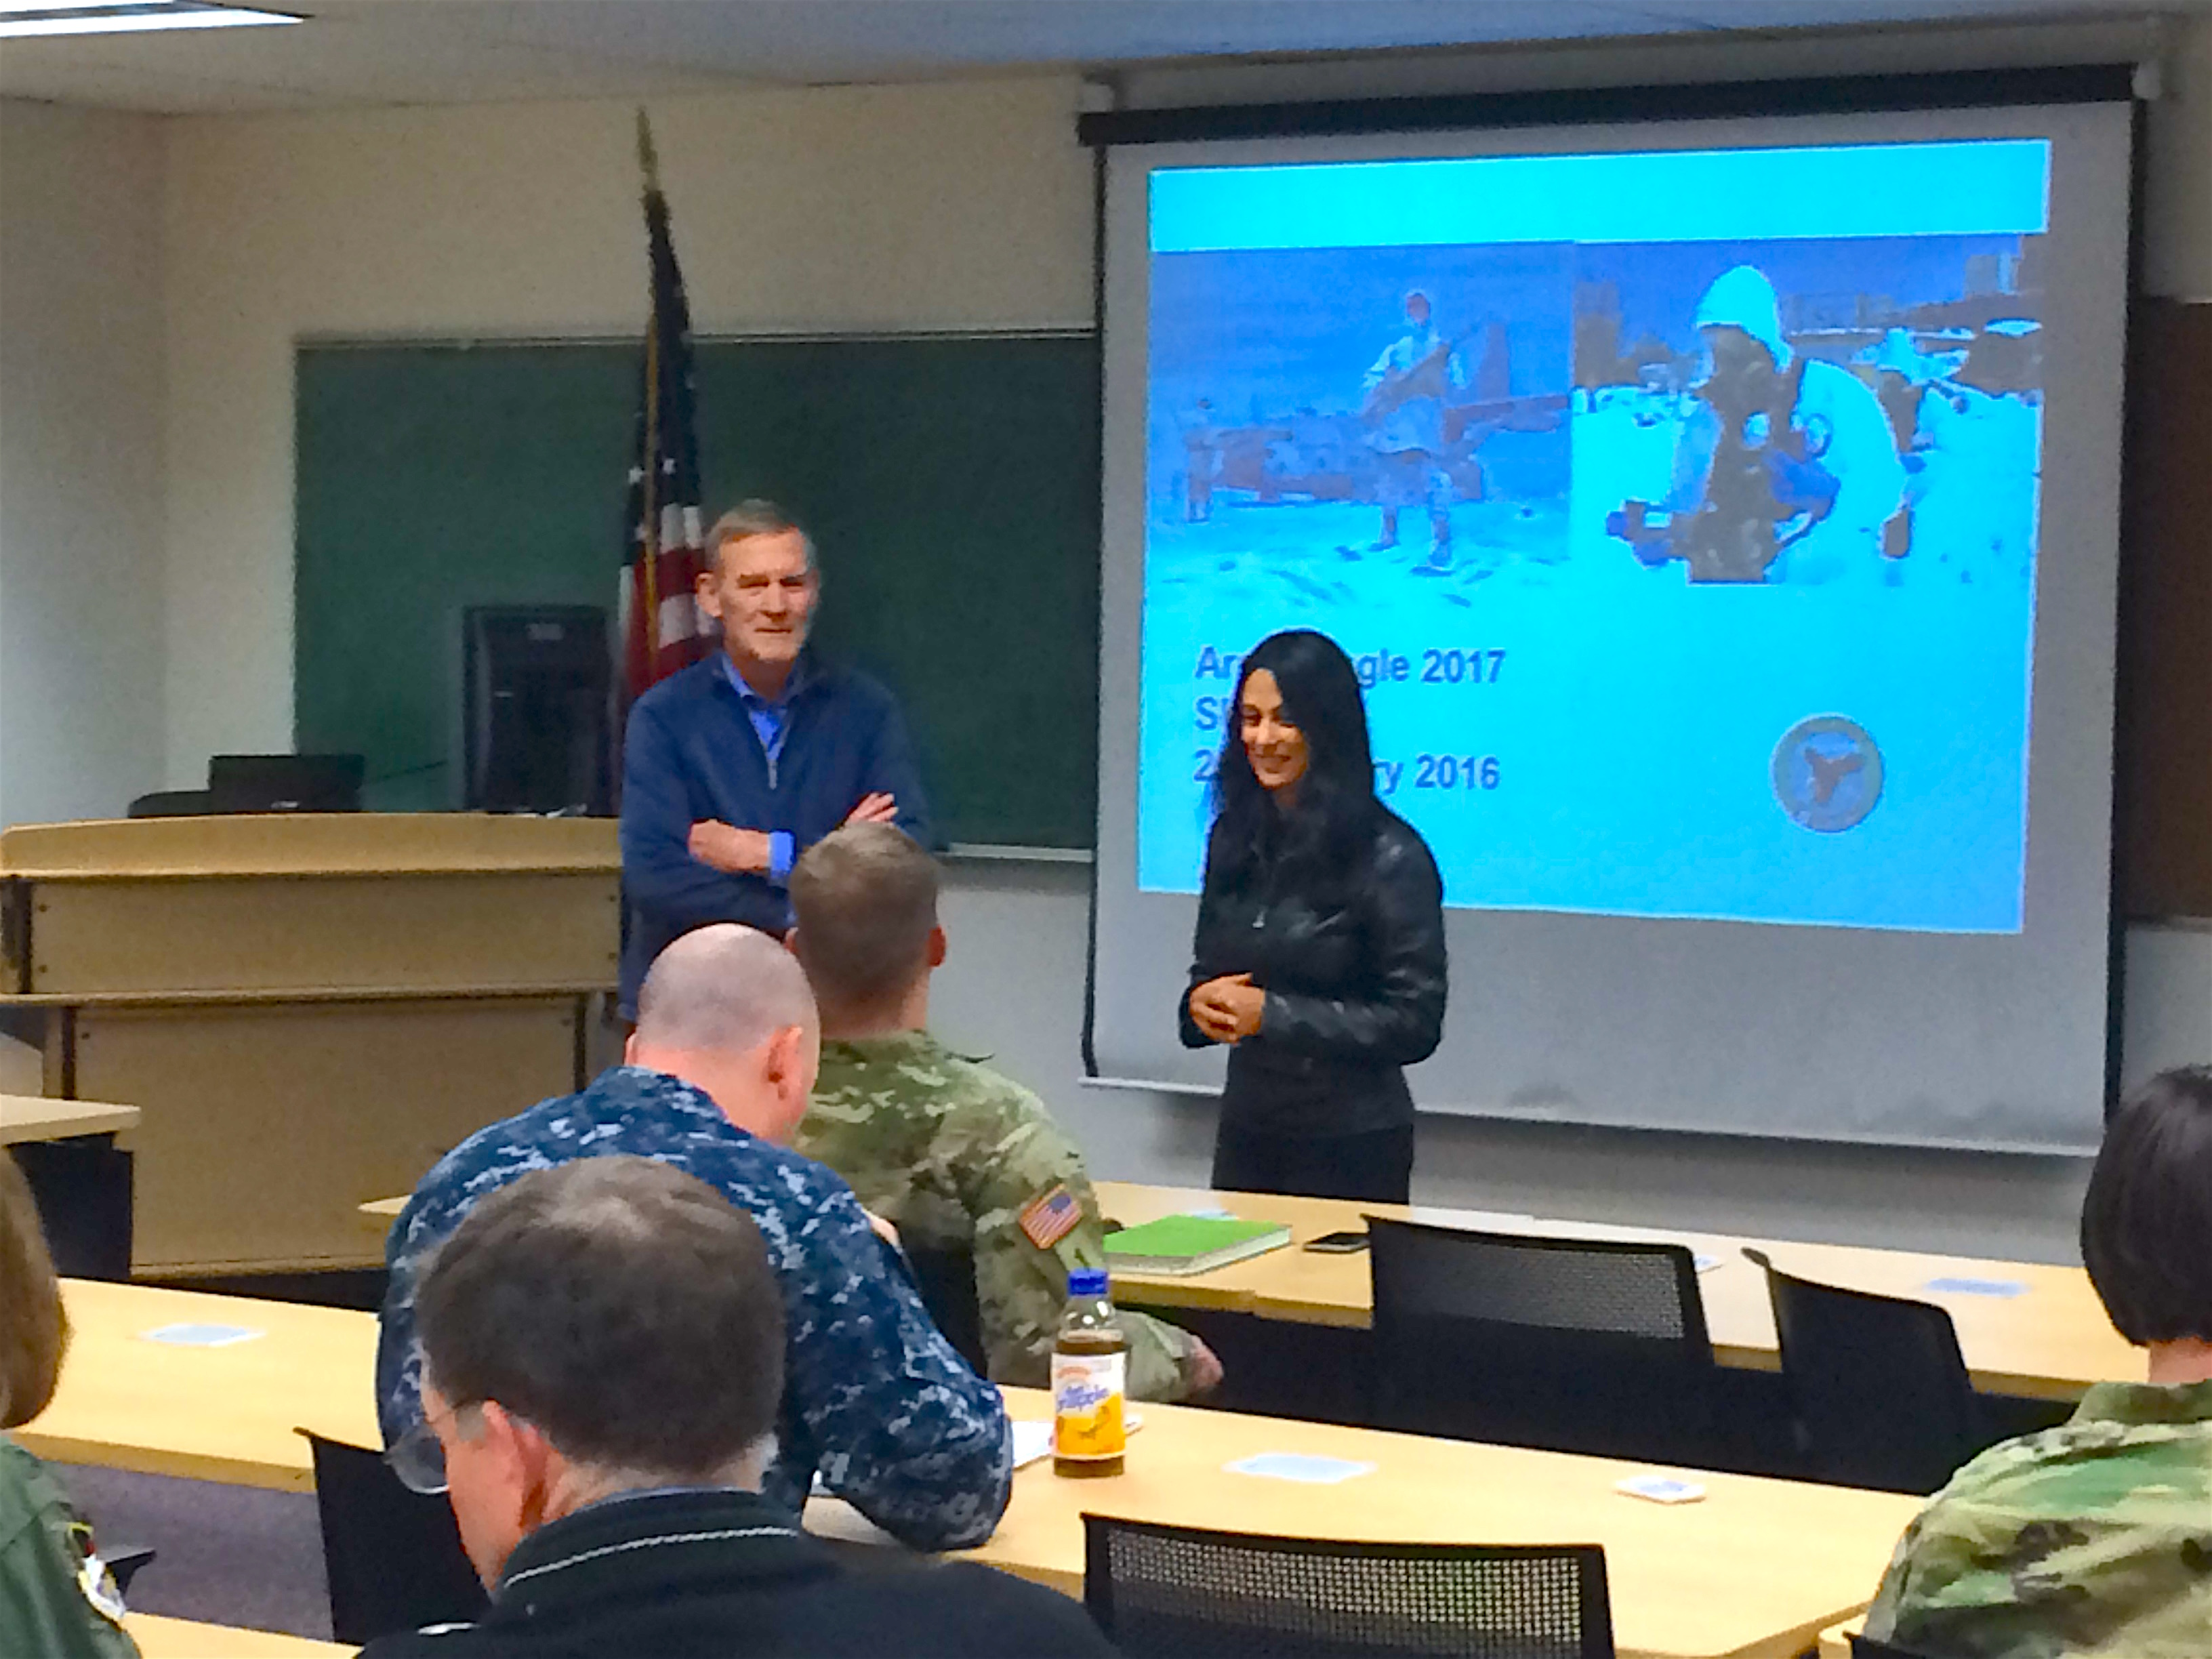 Tomasovic and Roy solicit feedback from the training audience during the exercise after-action review.